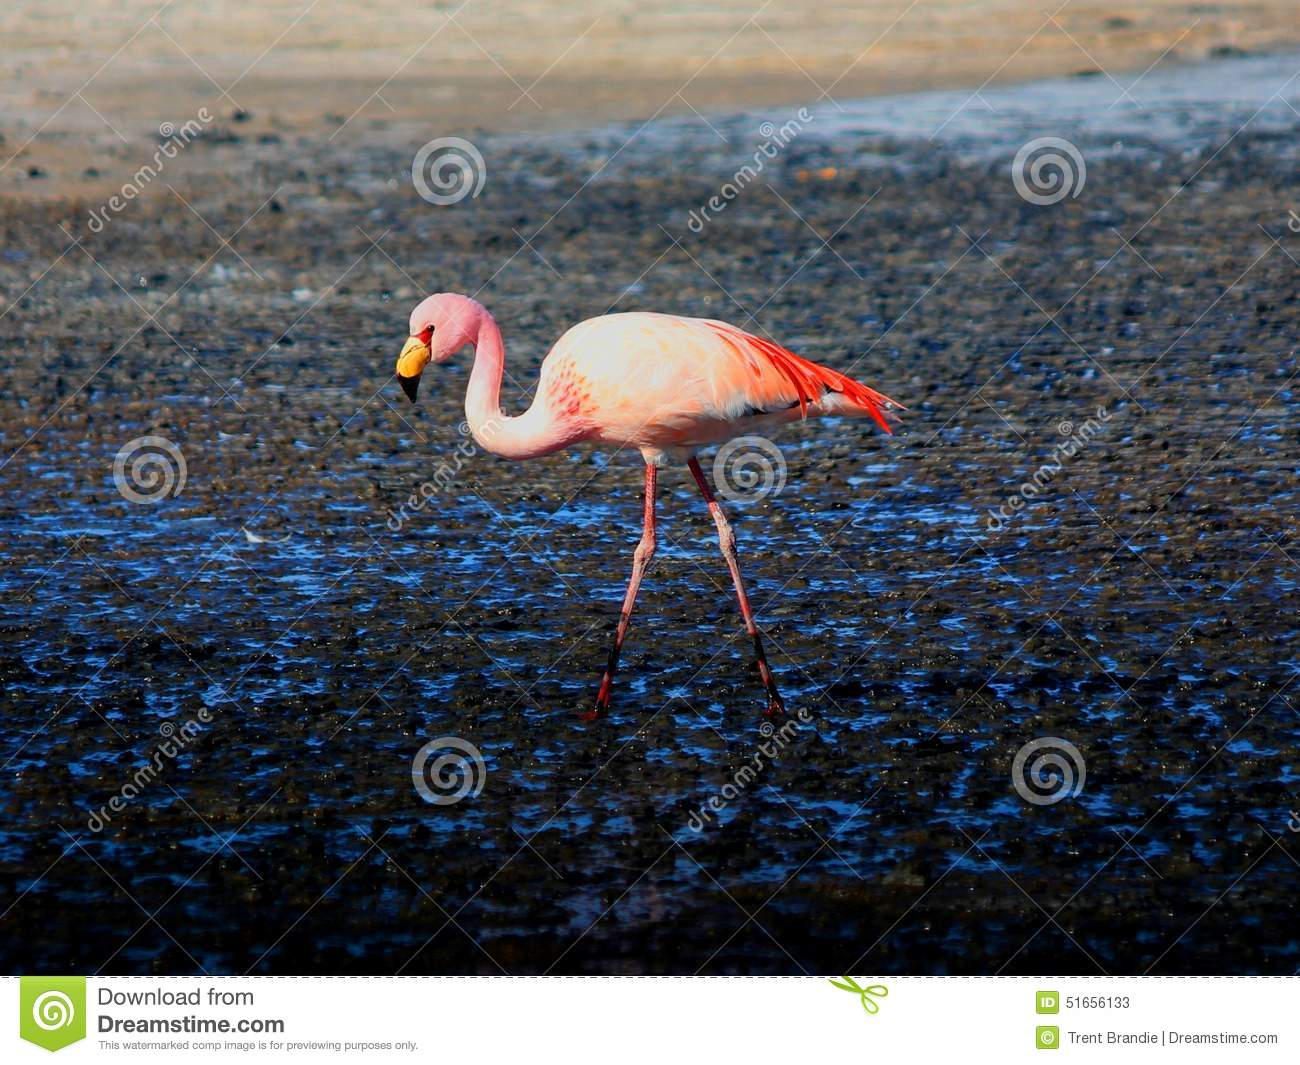 Flamant rose Bolivie